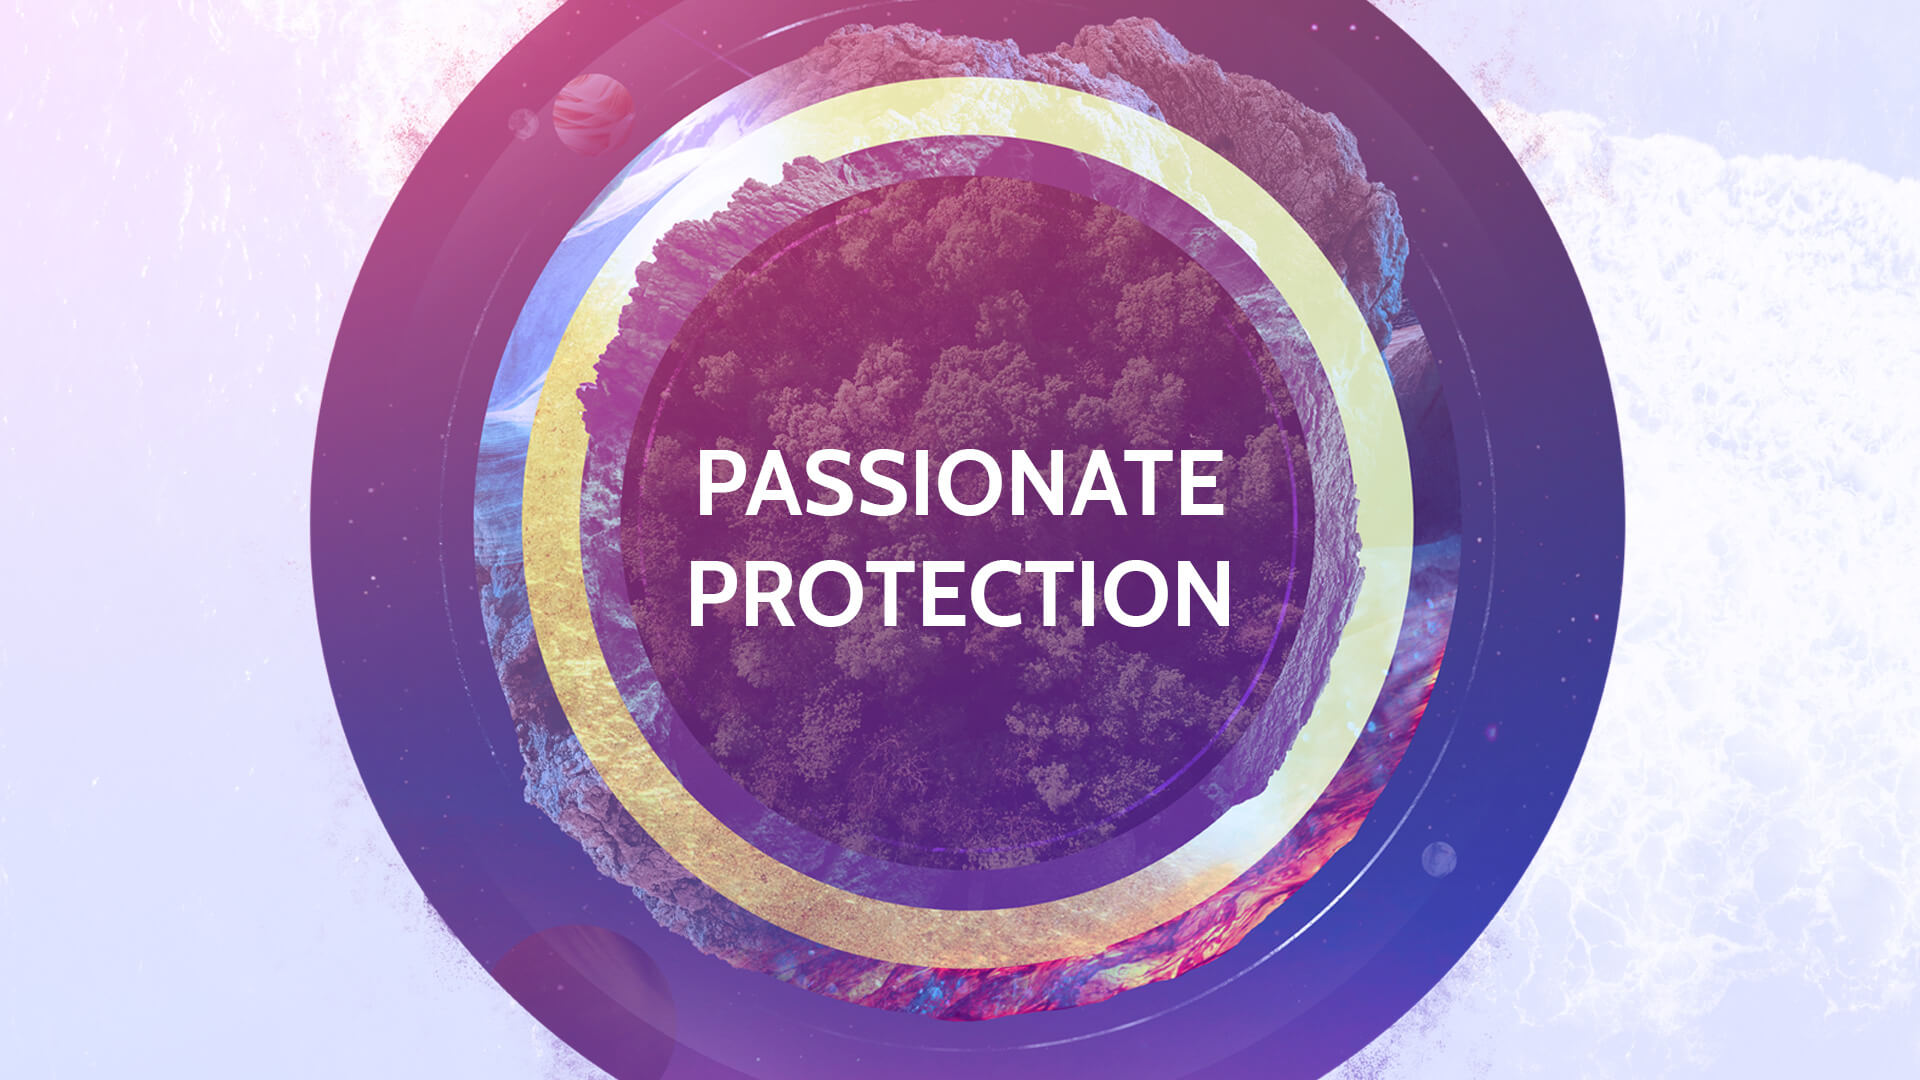 Passionate Protection